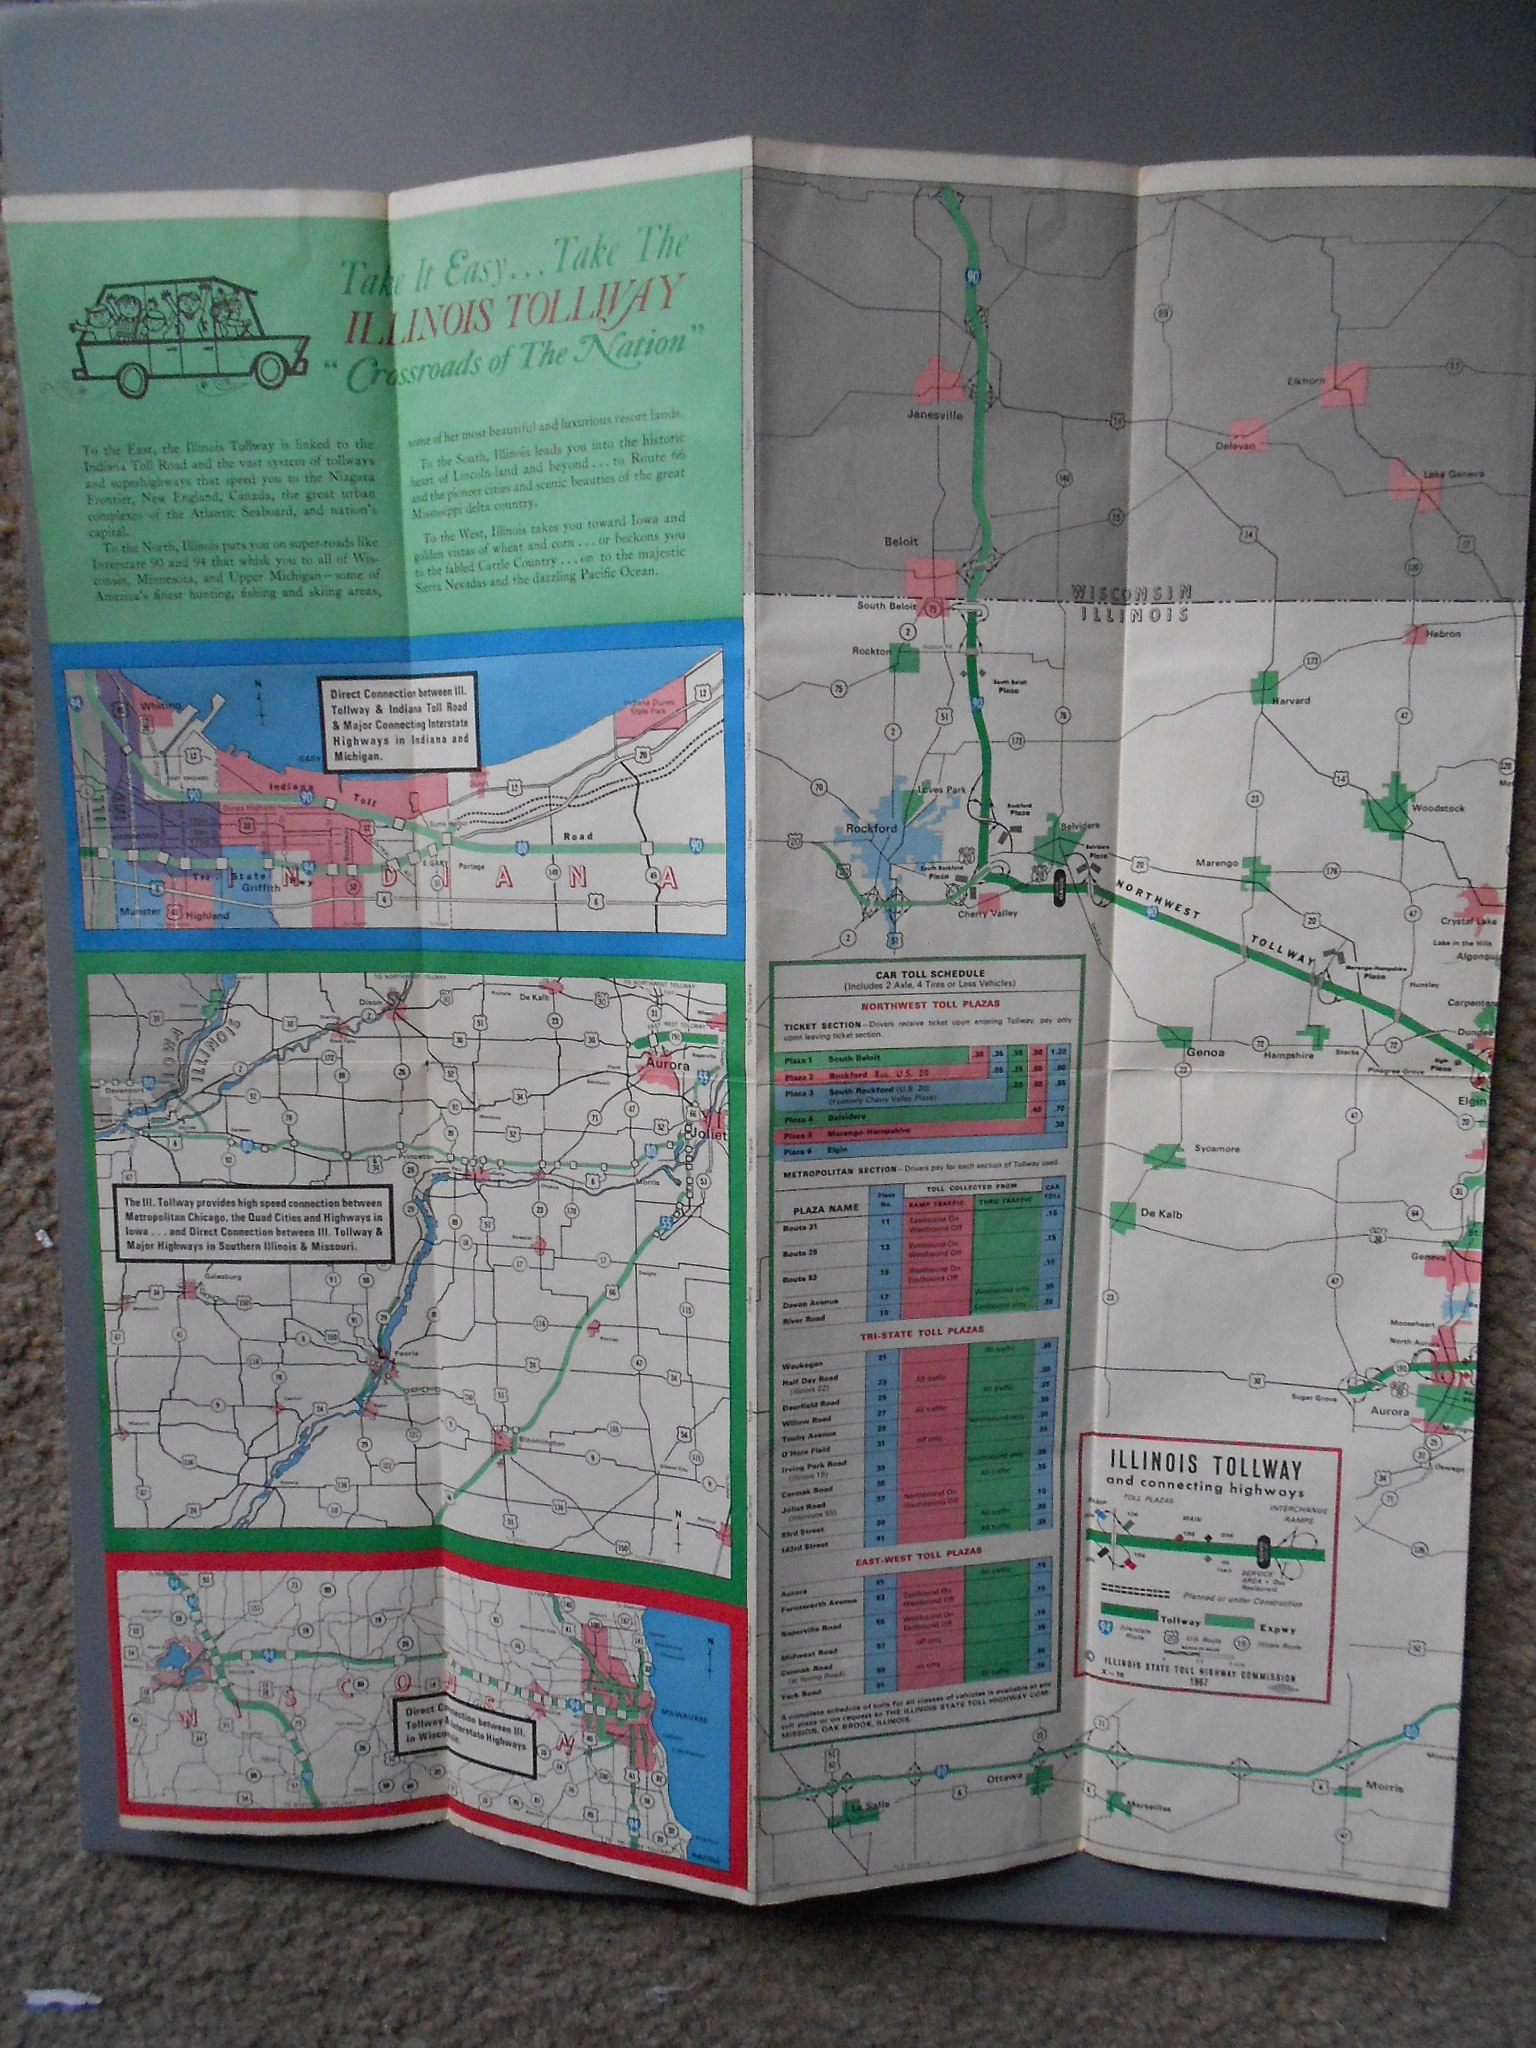 Illinois Toll Road Map on illinois road conditions interactive map, illinois state road map, illinois real estate map, illinois turnpike map, illinois road map online, illinois tollway oasis, illinois restaurant map, illinois dot construction map, e-470 tollway map, illinois department of transportation, northwest tollway, indiana illinois road map, illinois unpaid tolls, illinois state region, illinois natural gas pipeline map, winter road conditions illinois map, illinois state map with counties and cities, northeastern illinois road map, tri-state tollway, illinois road closure map, illinois route 47 map, illinois 4th congressional district map, chicago skyway, road construction in illinois map, illinois highway names,